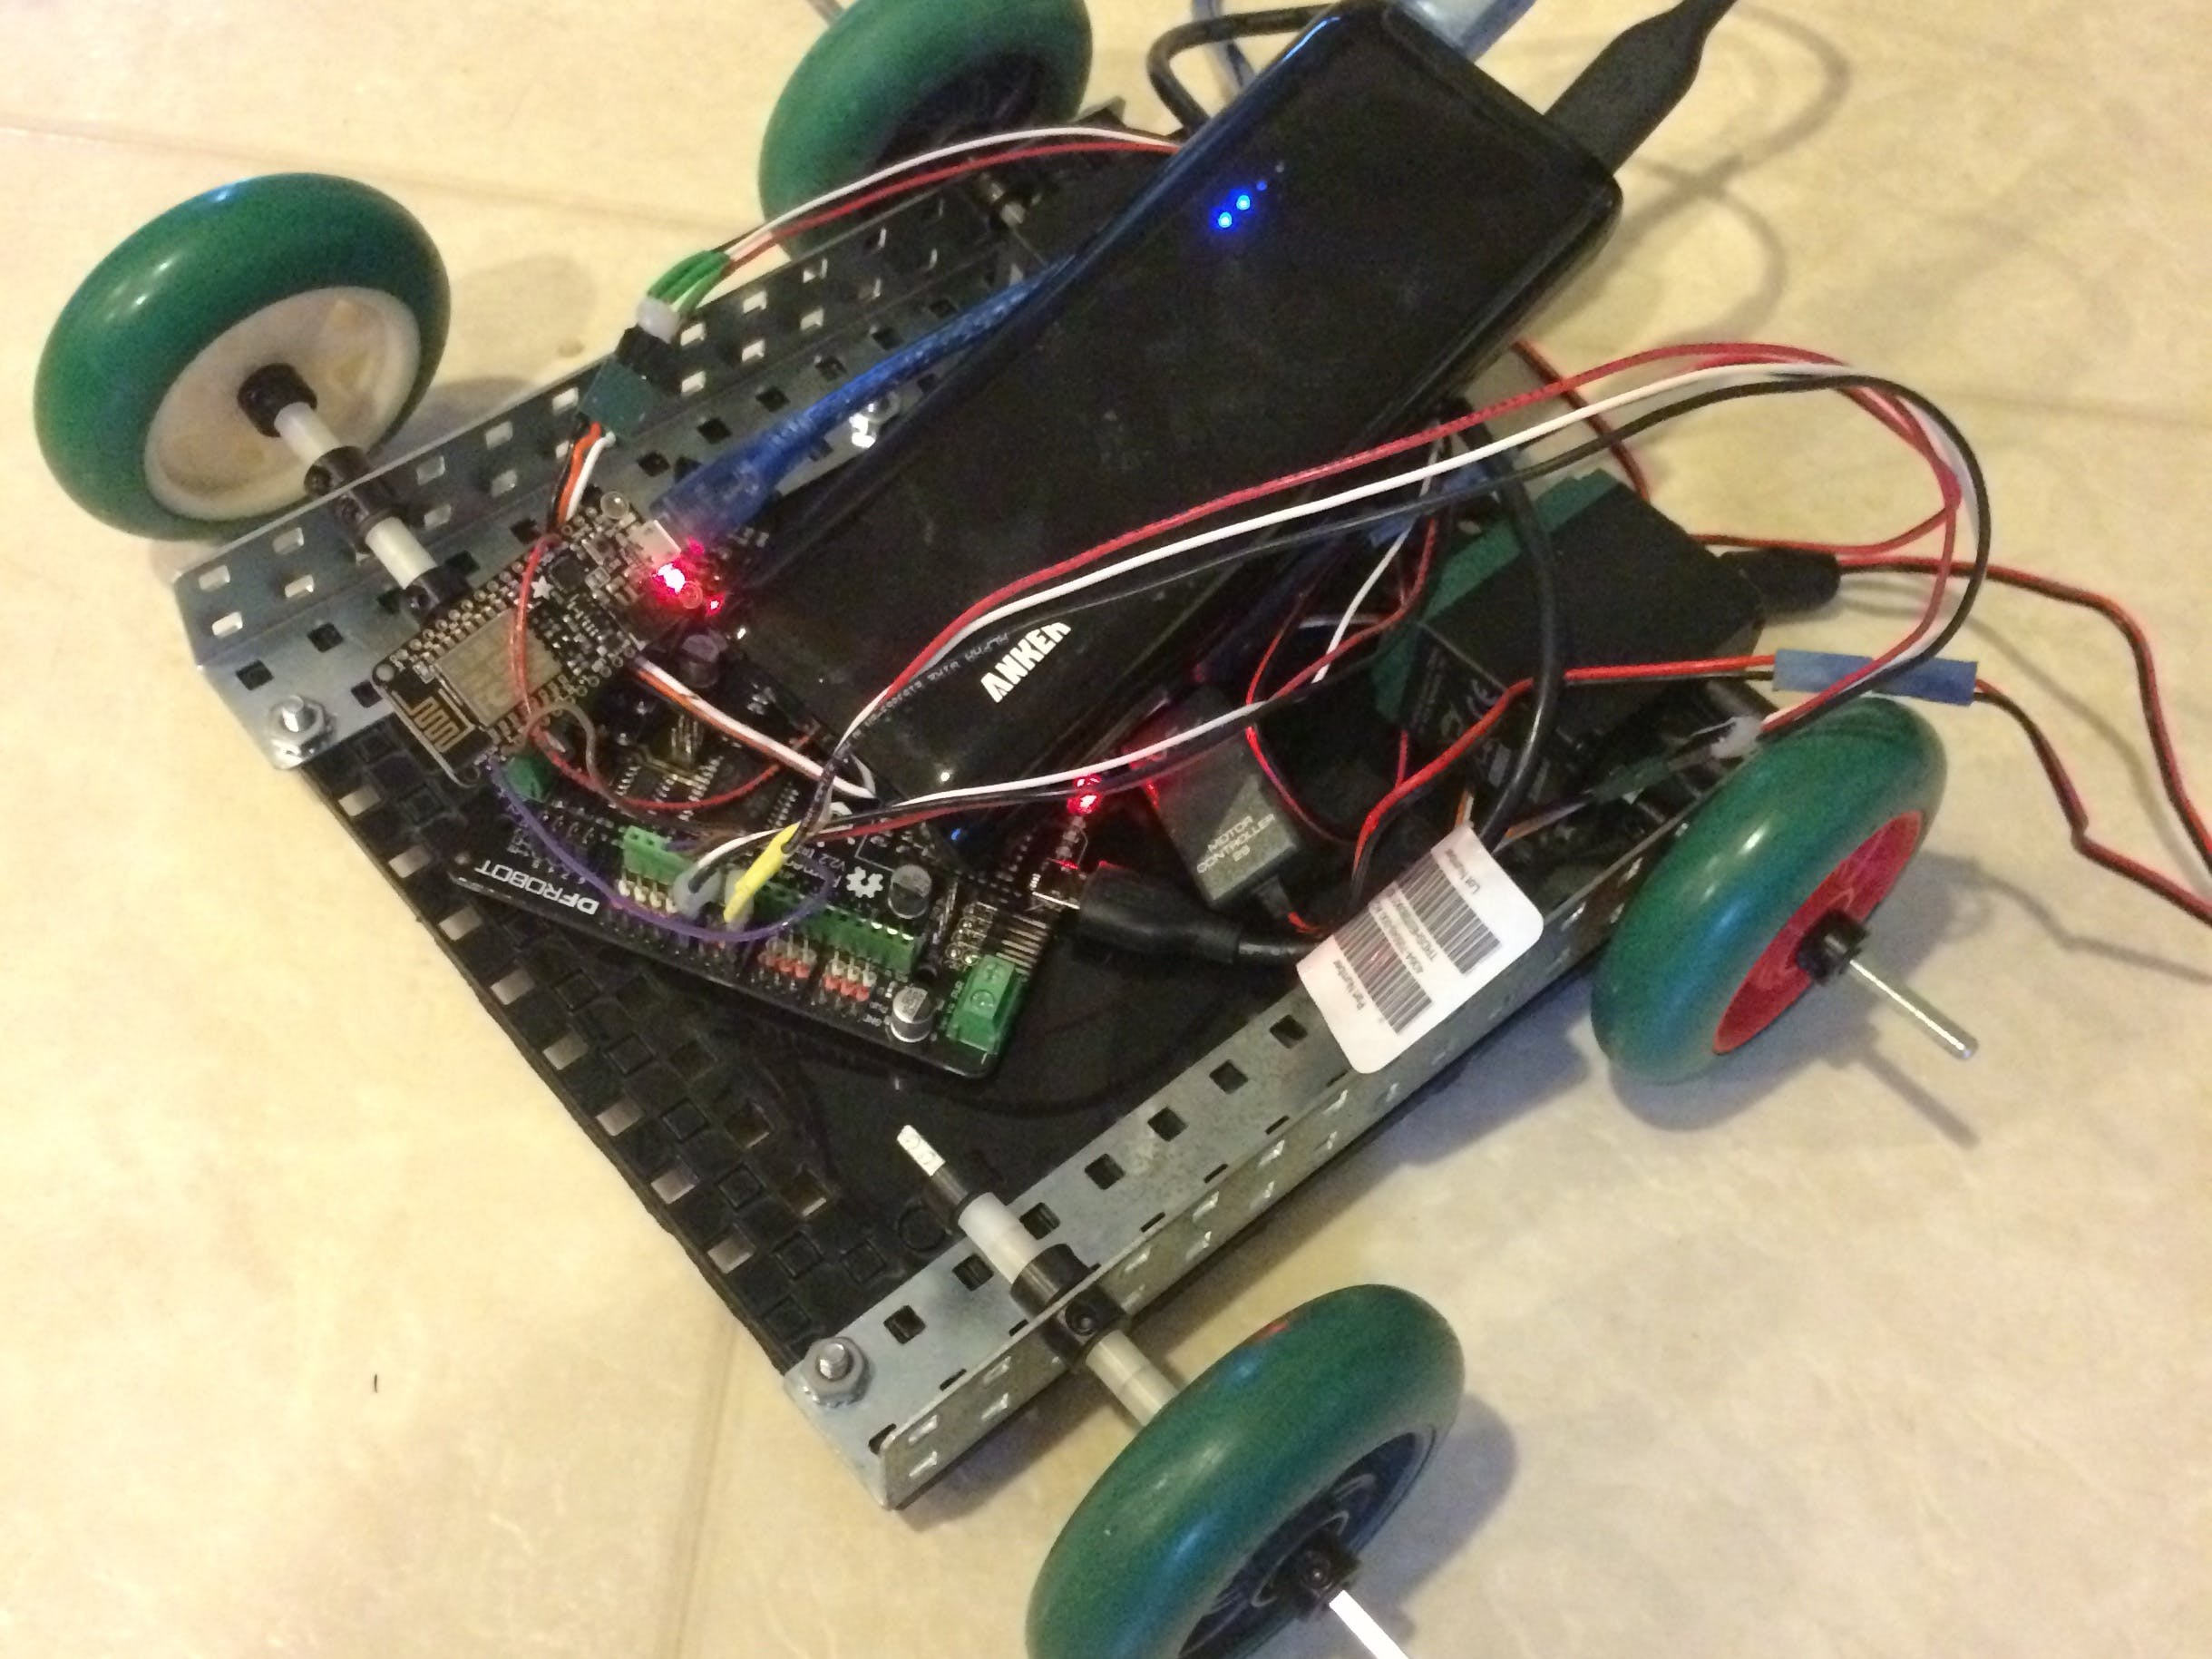 Web-Based Voice-Controlled Robot!